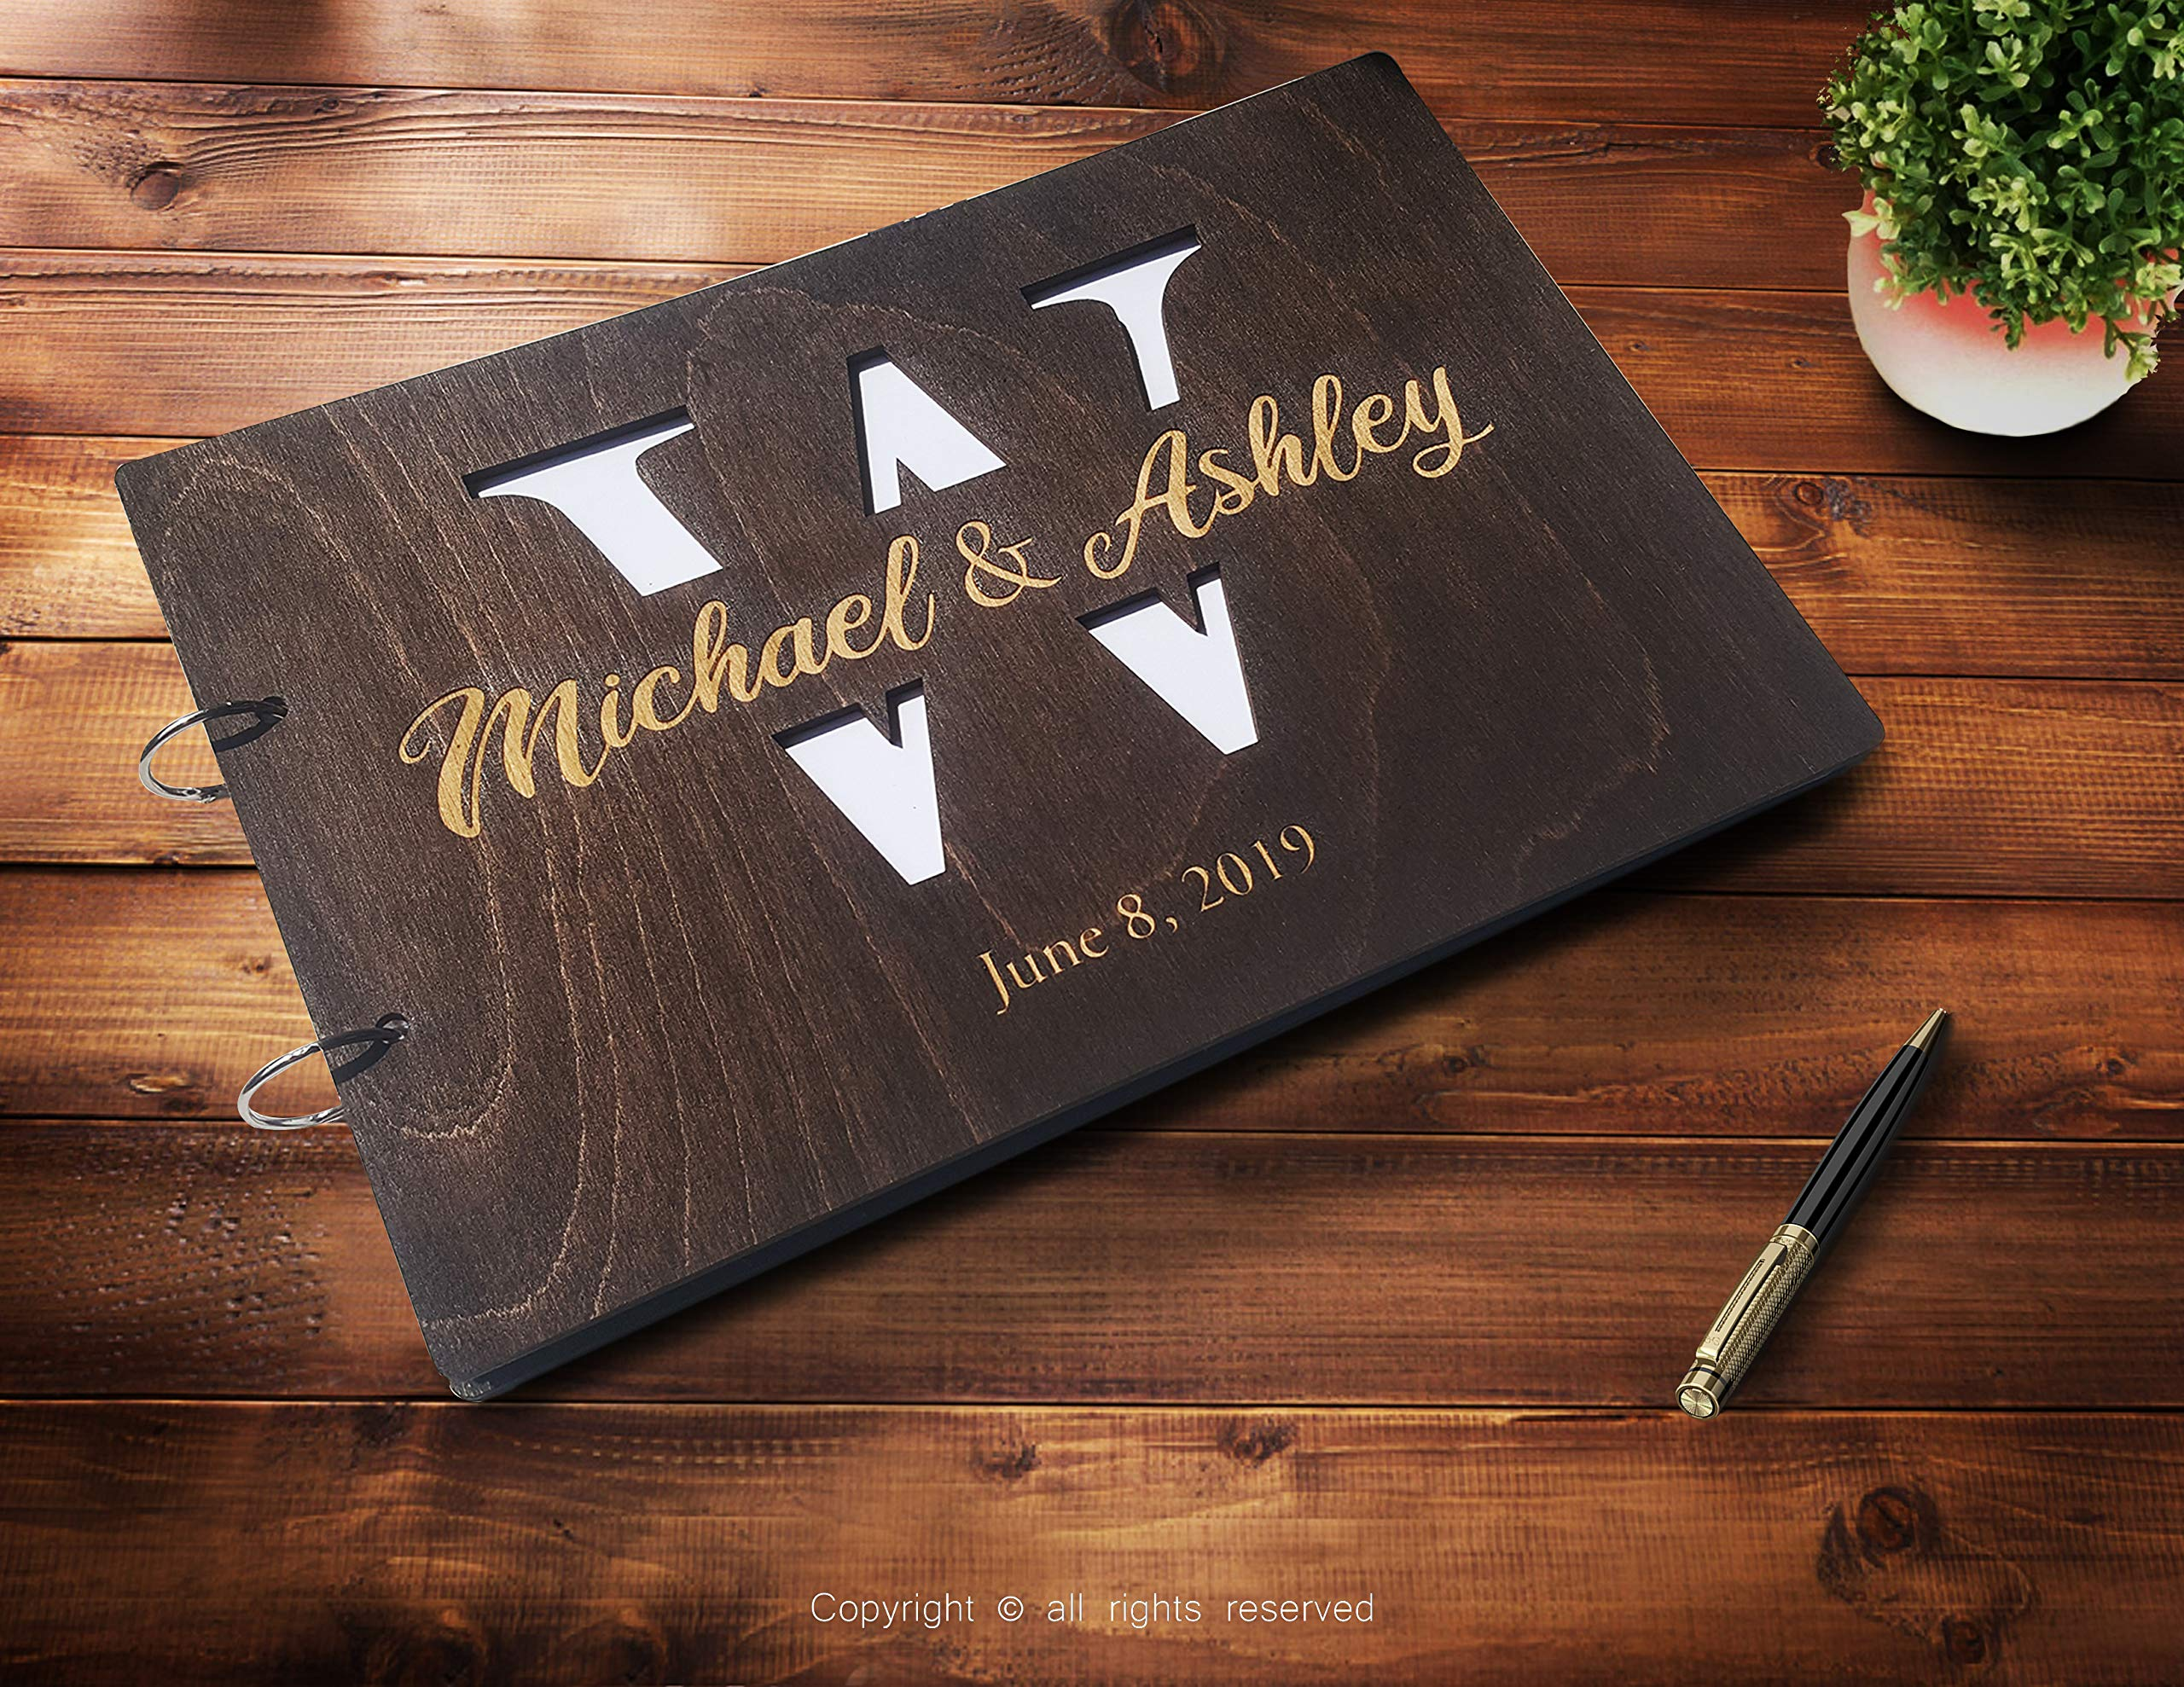 Just Customized Personalized Handmade Mr Mrs Wedding Guest Book for Bride and Groom Wood Alternative Custom Engraved Newlywed Marriage Album (Chocolate Walnut) by Just Customized (Image #2)